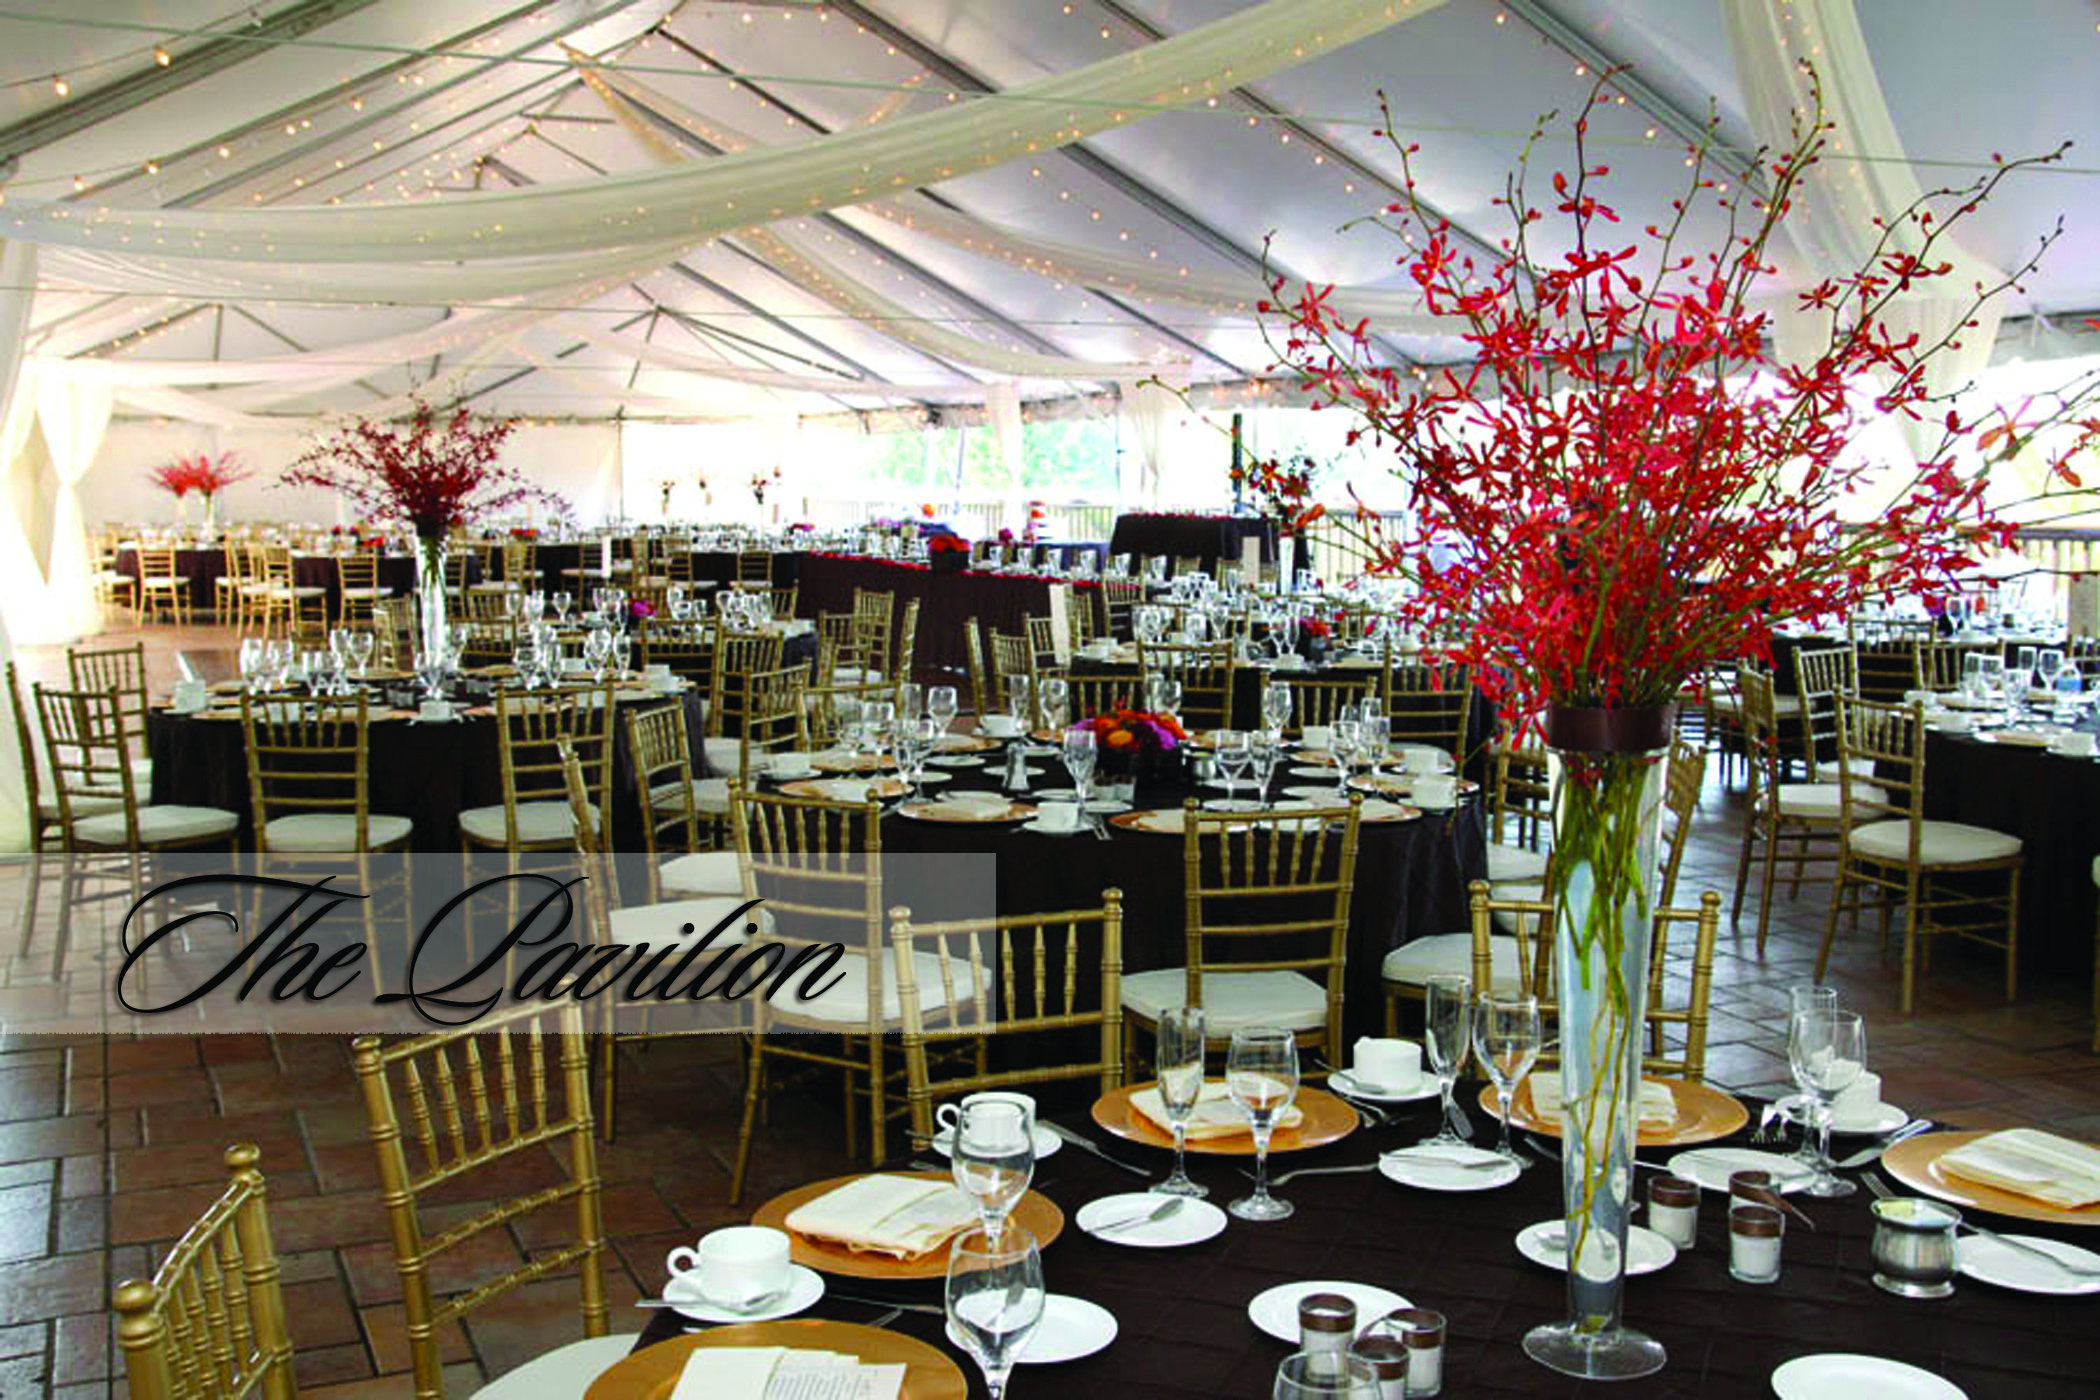 Tent Set for a Wedding Reception with Brown and Red